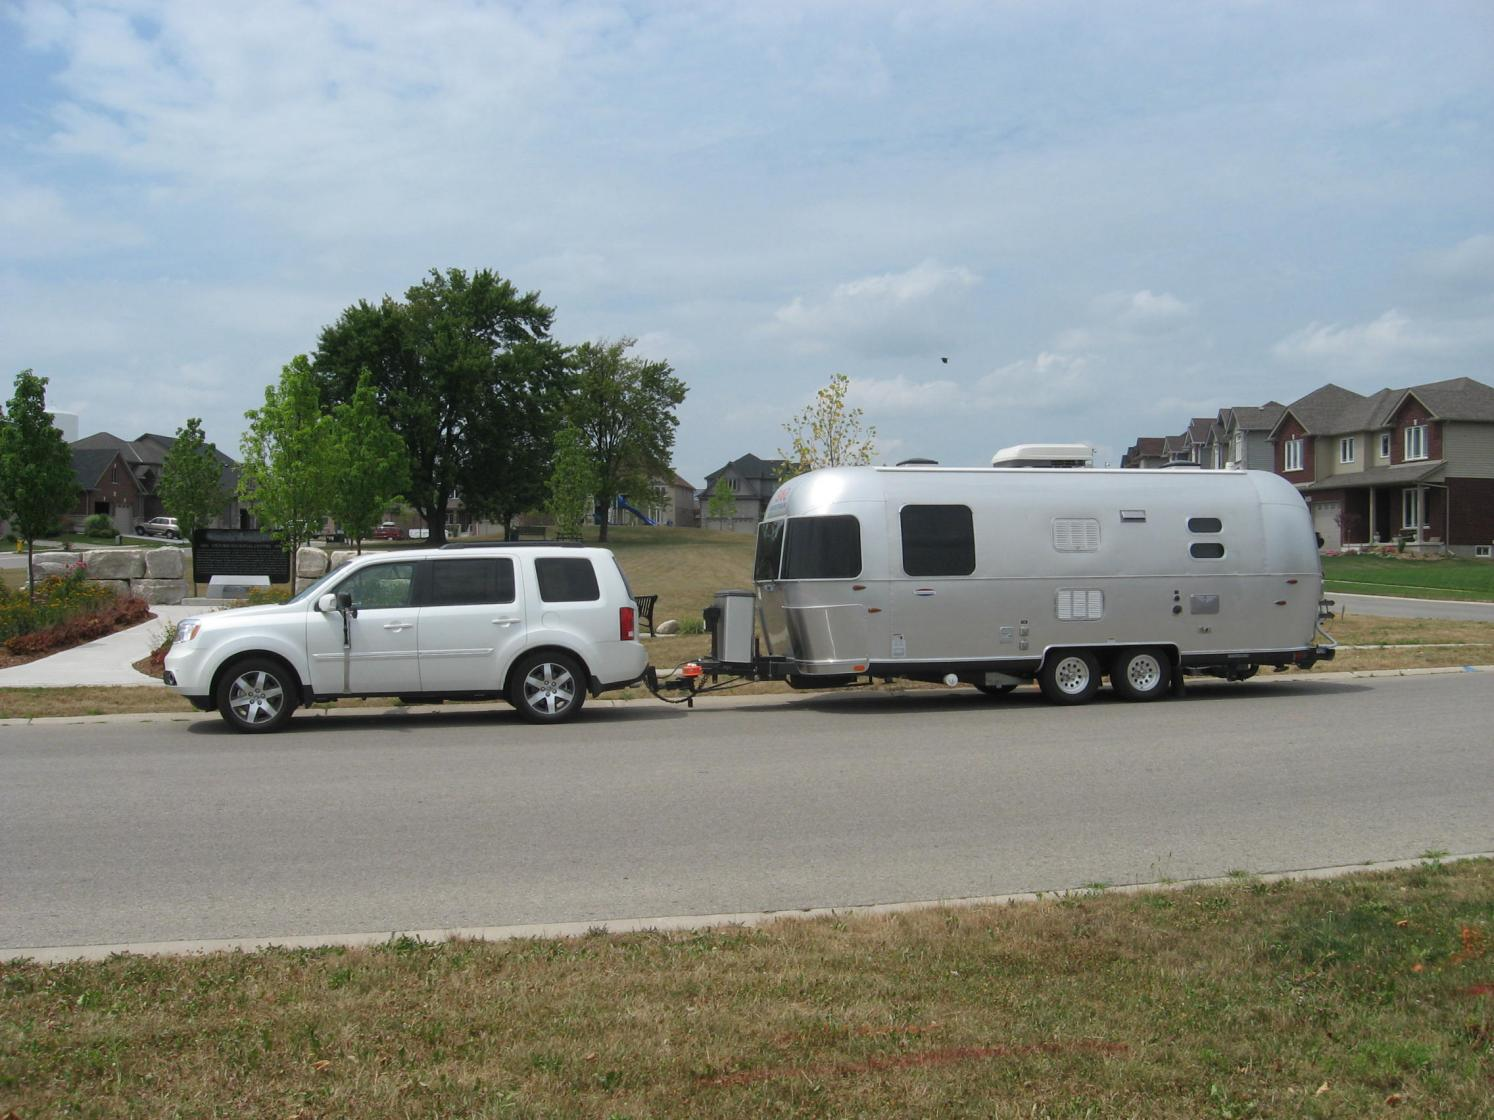 2012 Pilot 4wd What Rv Are You Towing Page 2 Honda